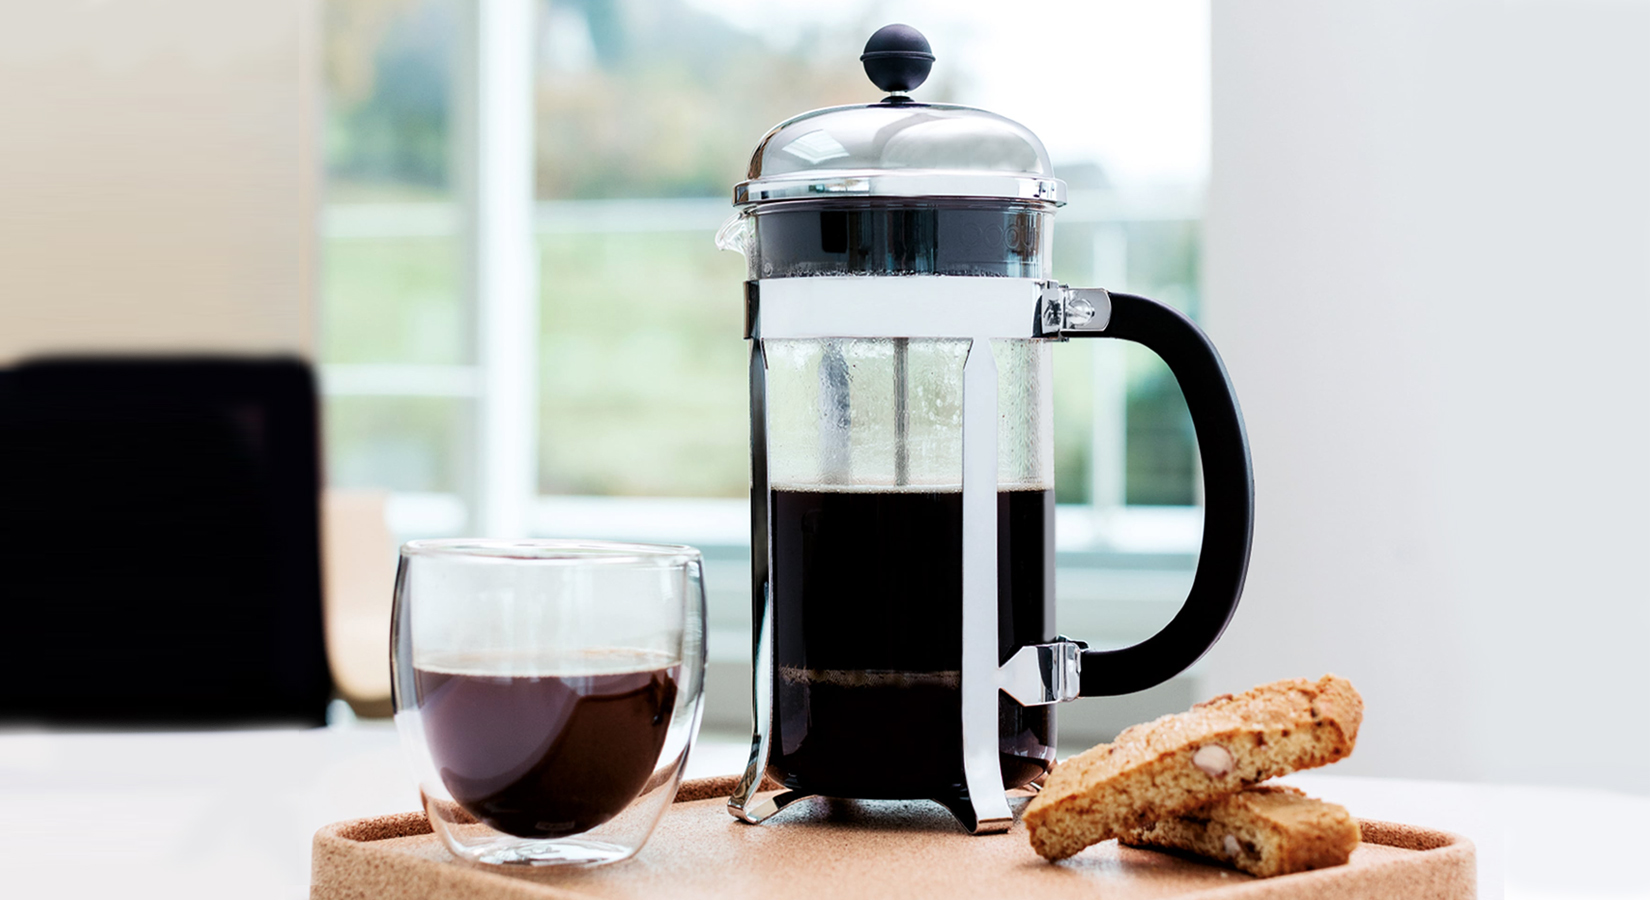 #25DaysOfGifting: Day 11 – Modena Coffee Press & Glass Set